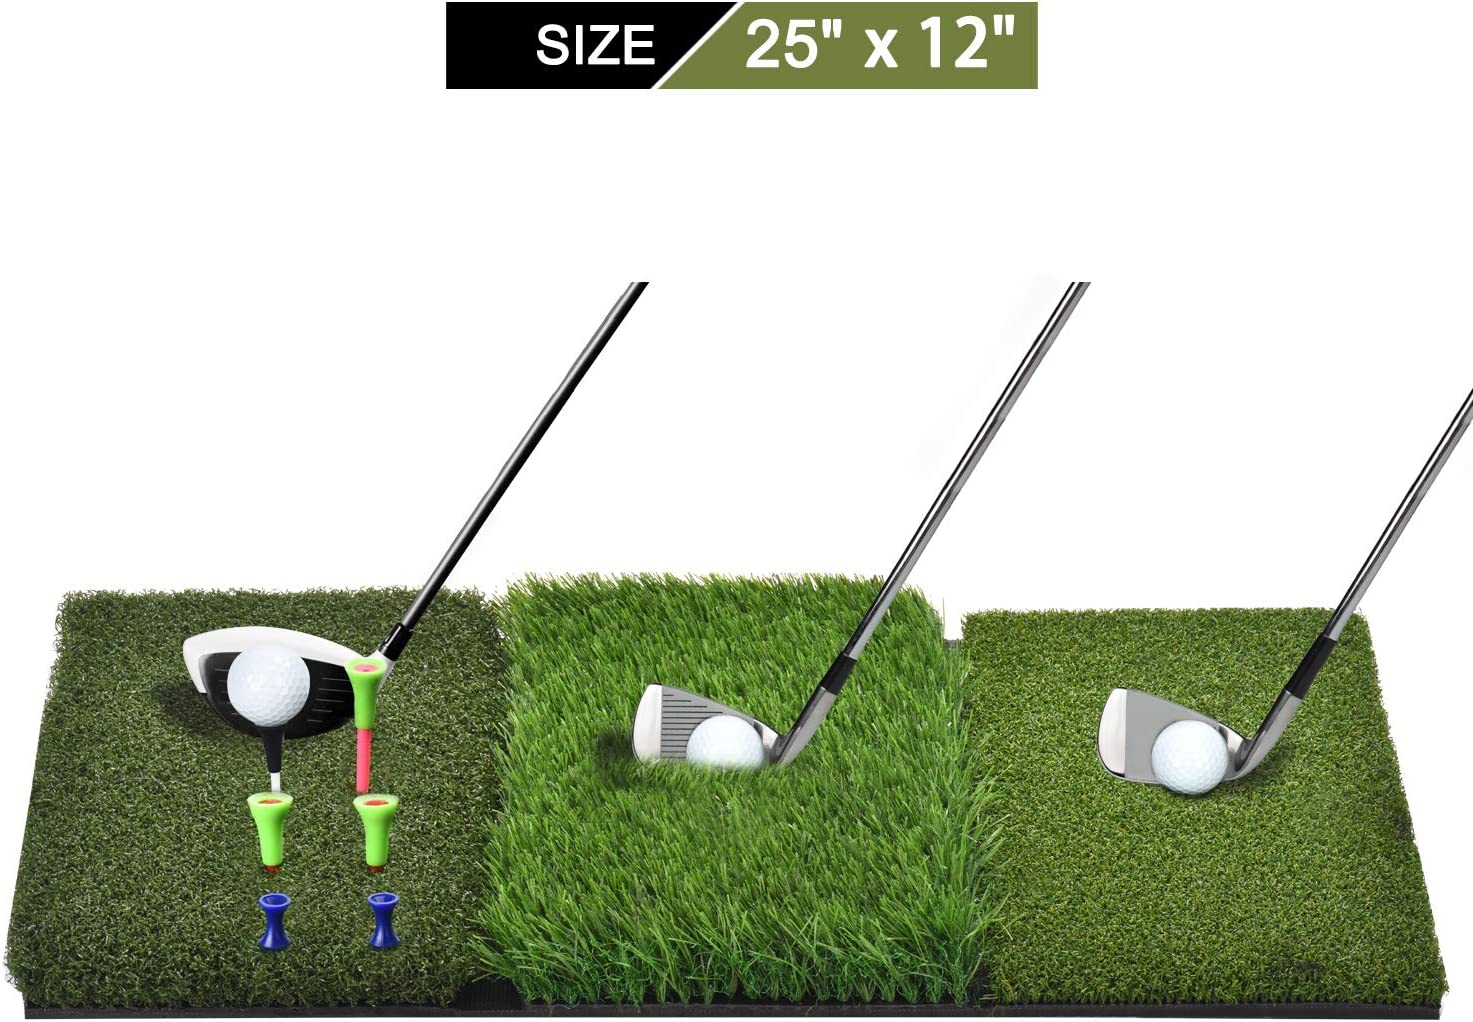 SUNHOO Golf Hitting Mat, Turf Grass 3-in-1 Collapsible Chipping Mat with Tees, Launch Pad for Backyard, Practice Putting Green Training Aids, Indoor | Outdoor